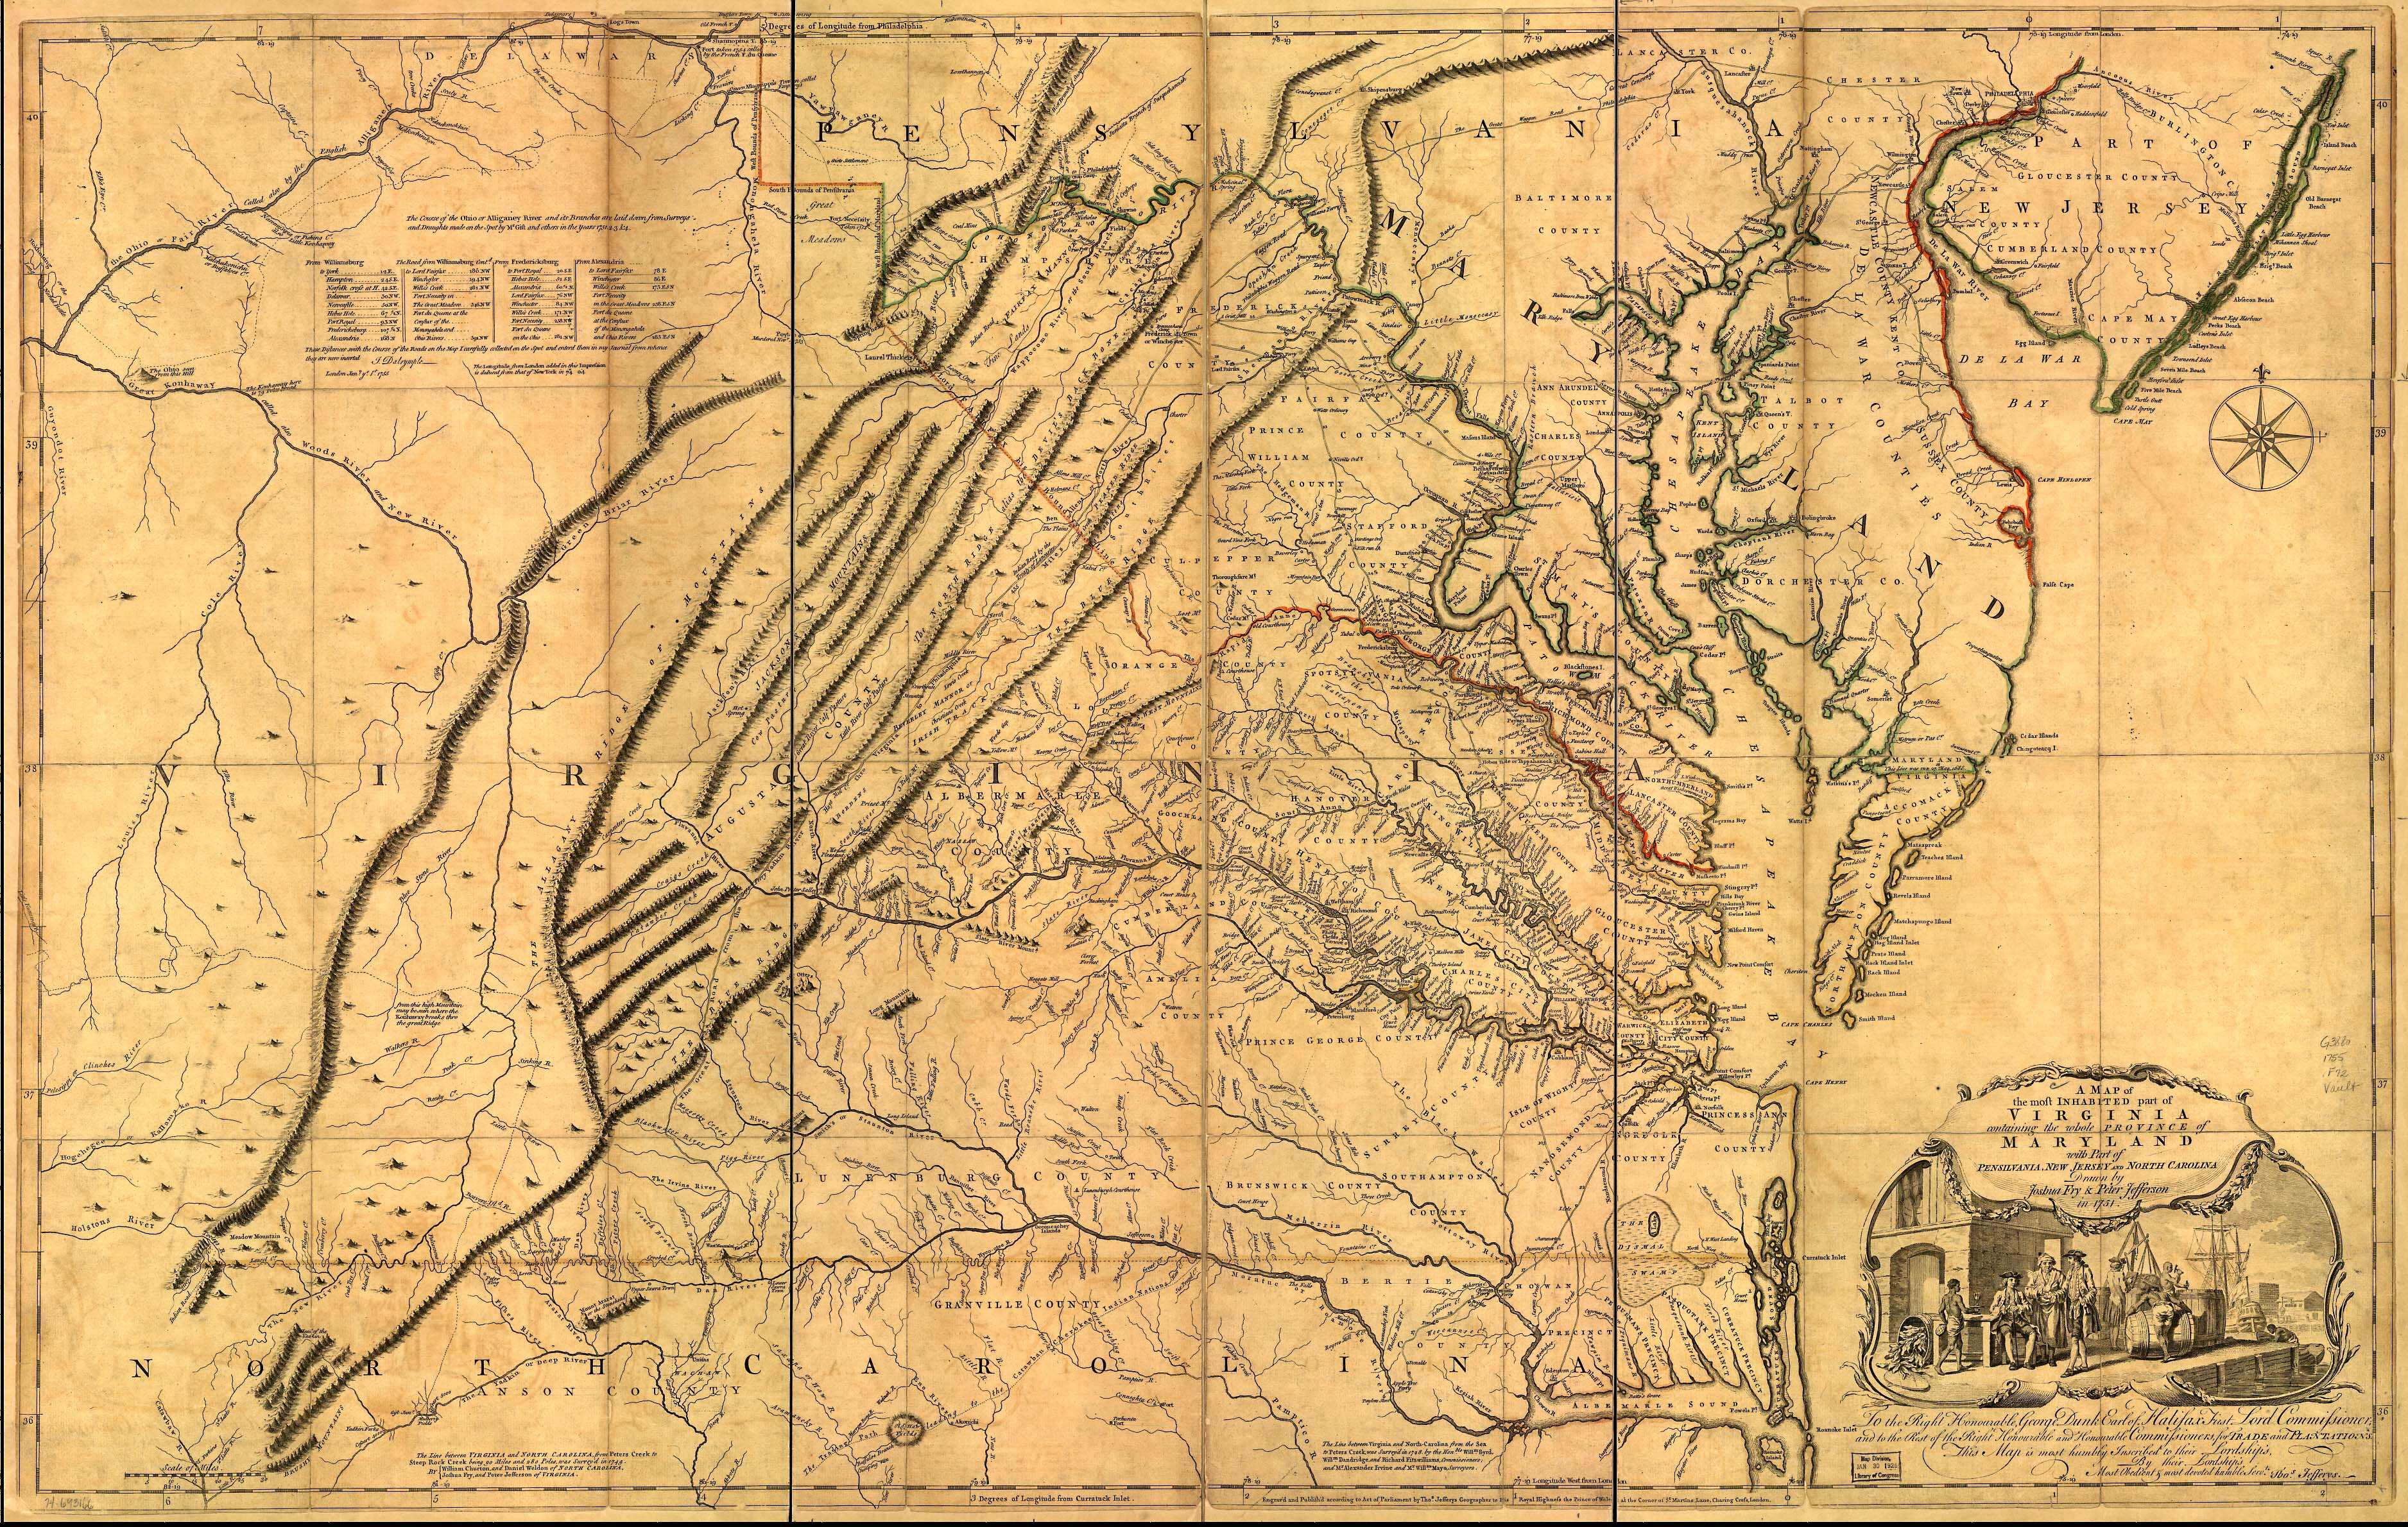 Tricities region shown on the Fry-Jefferson map (1752)